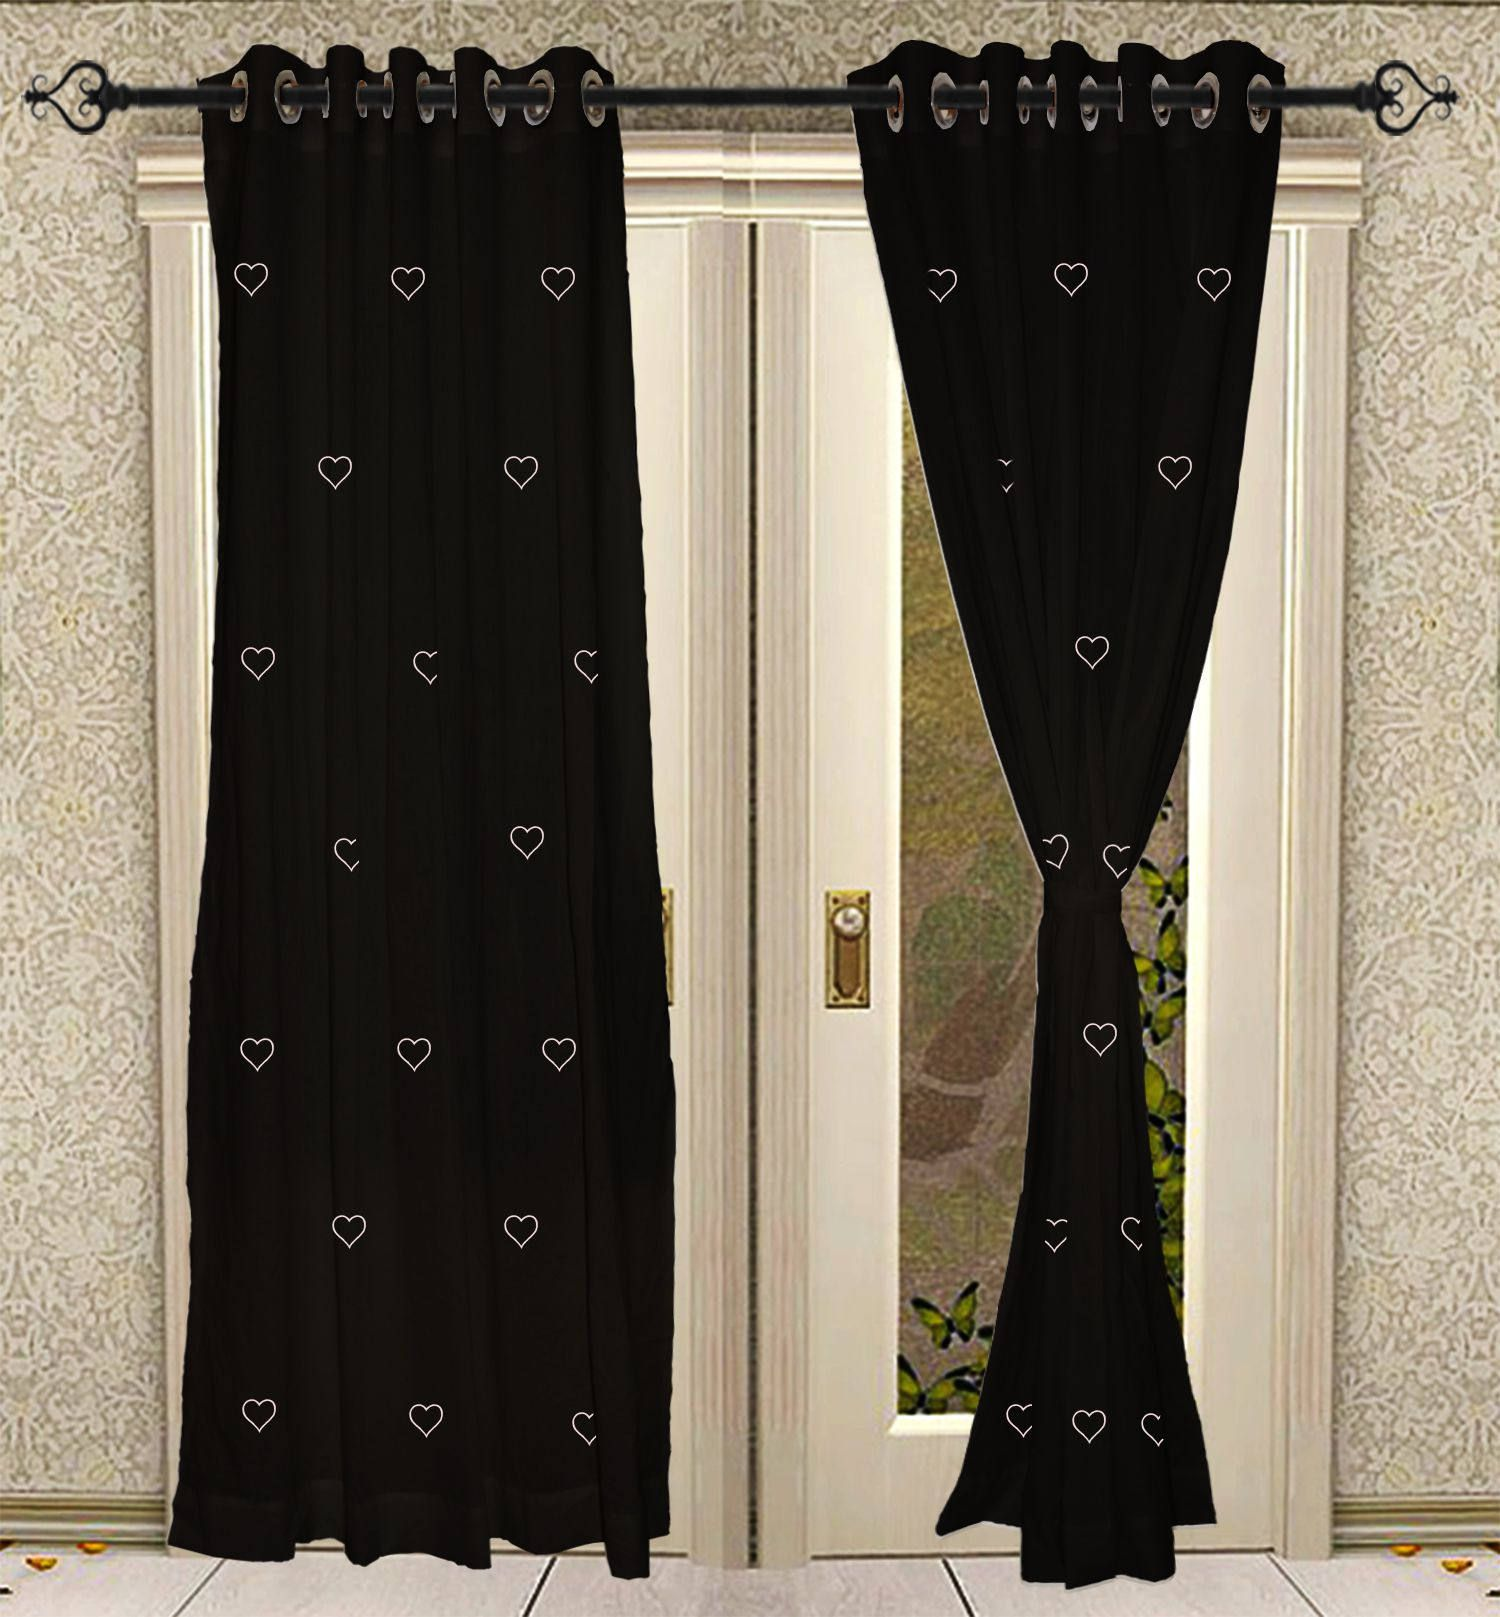 Black And Blue Curtains Black Eyelet Hand Black Printed Blue Door Window Treatments Drapes